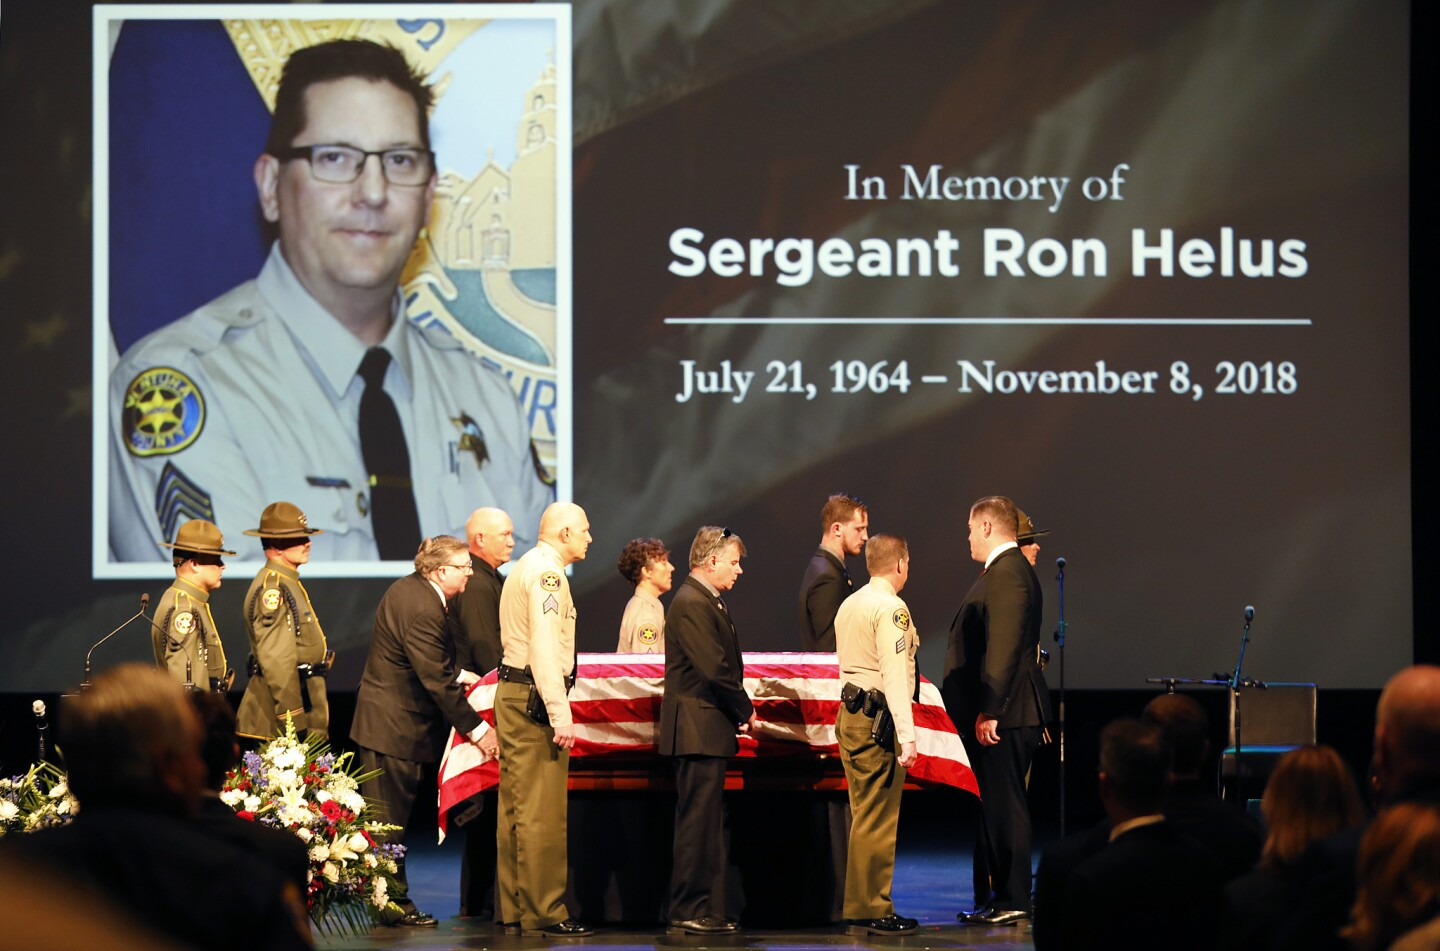 Memorial services held for Ventura County Sheriff's Sgt. Ron Helus